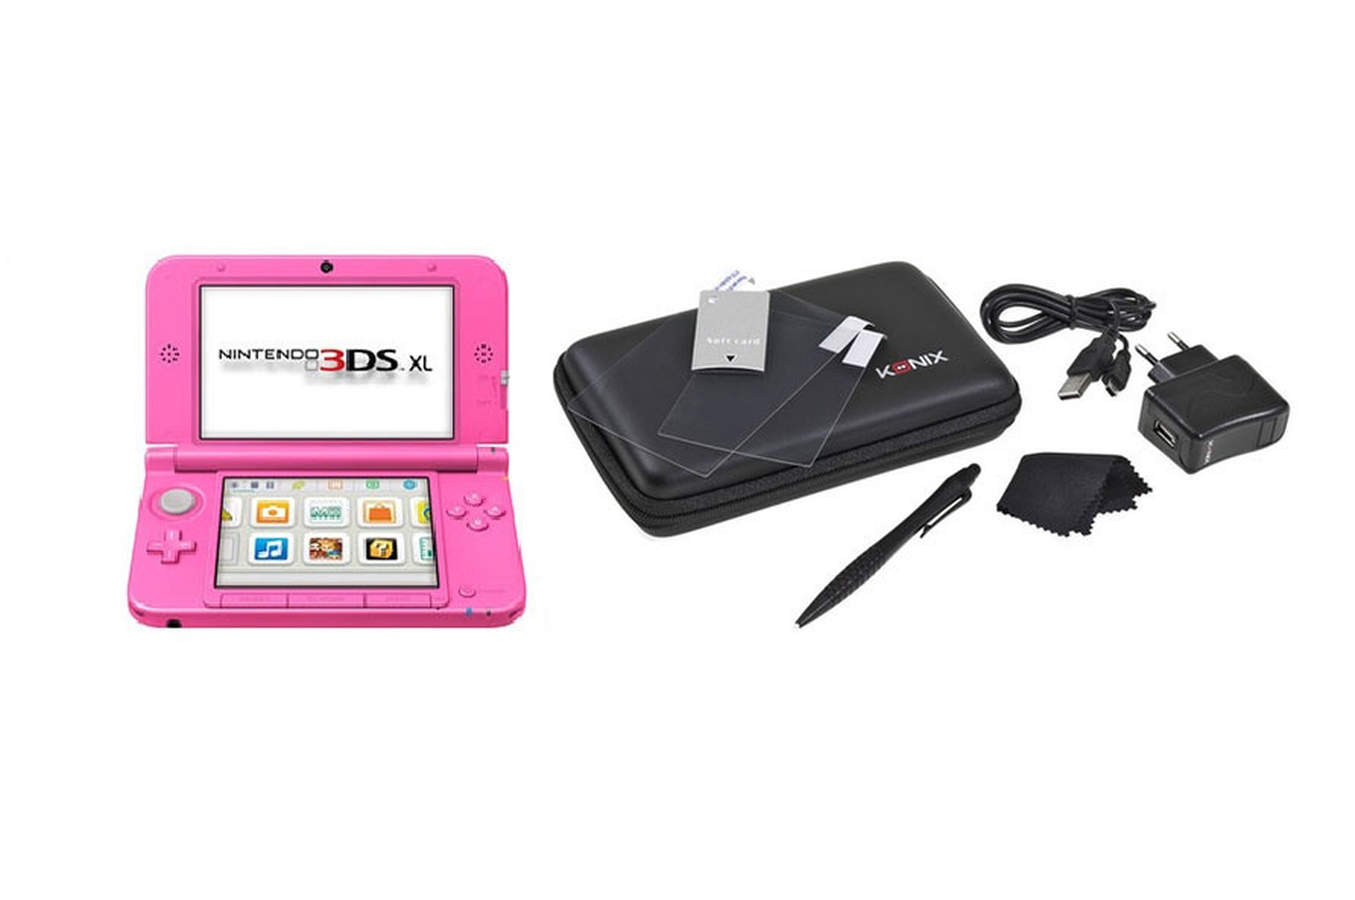 Consoles 3ds nintendo 3ds xl rose starter pack 3843831 darty - Nintendo 3 ds xl console ...